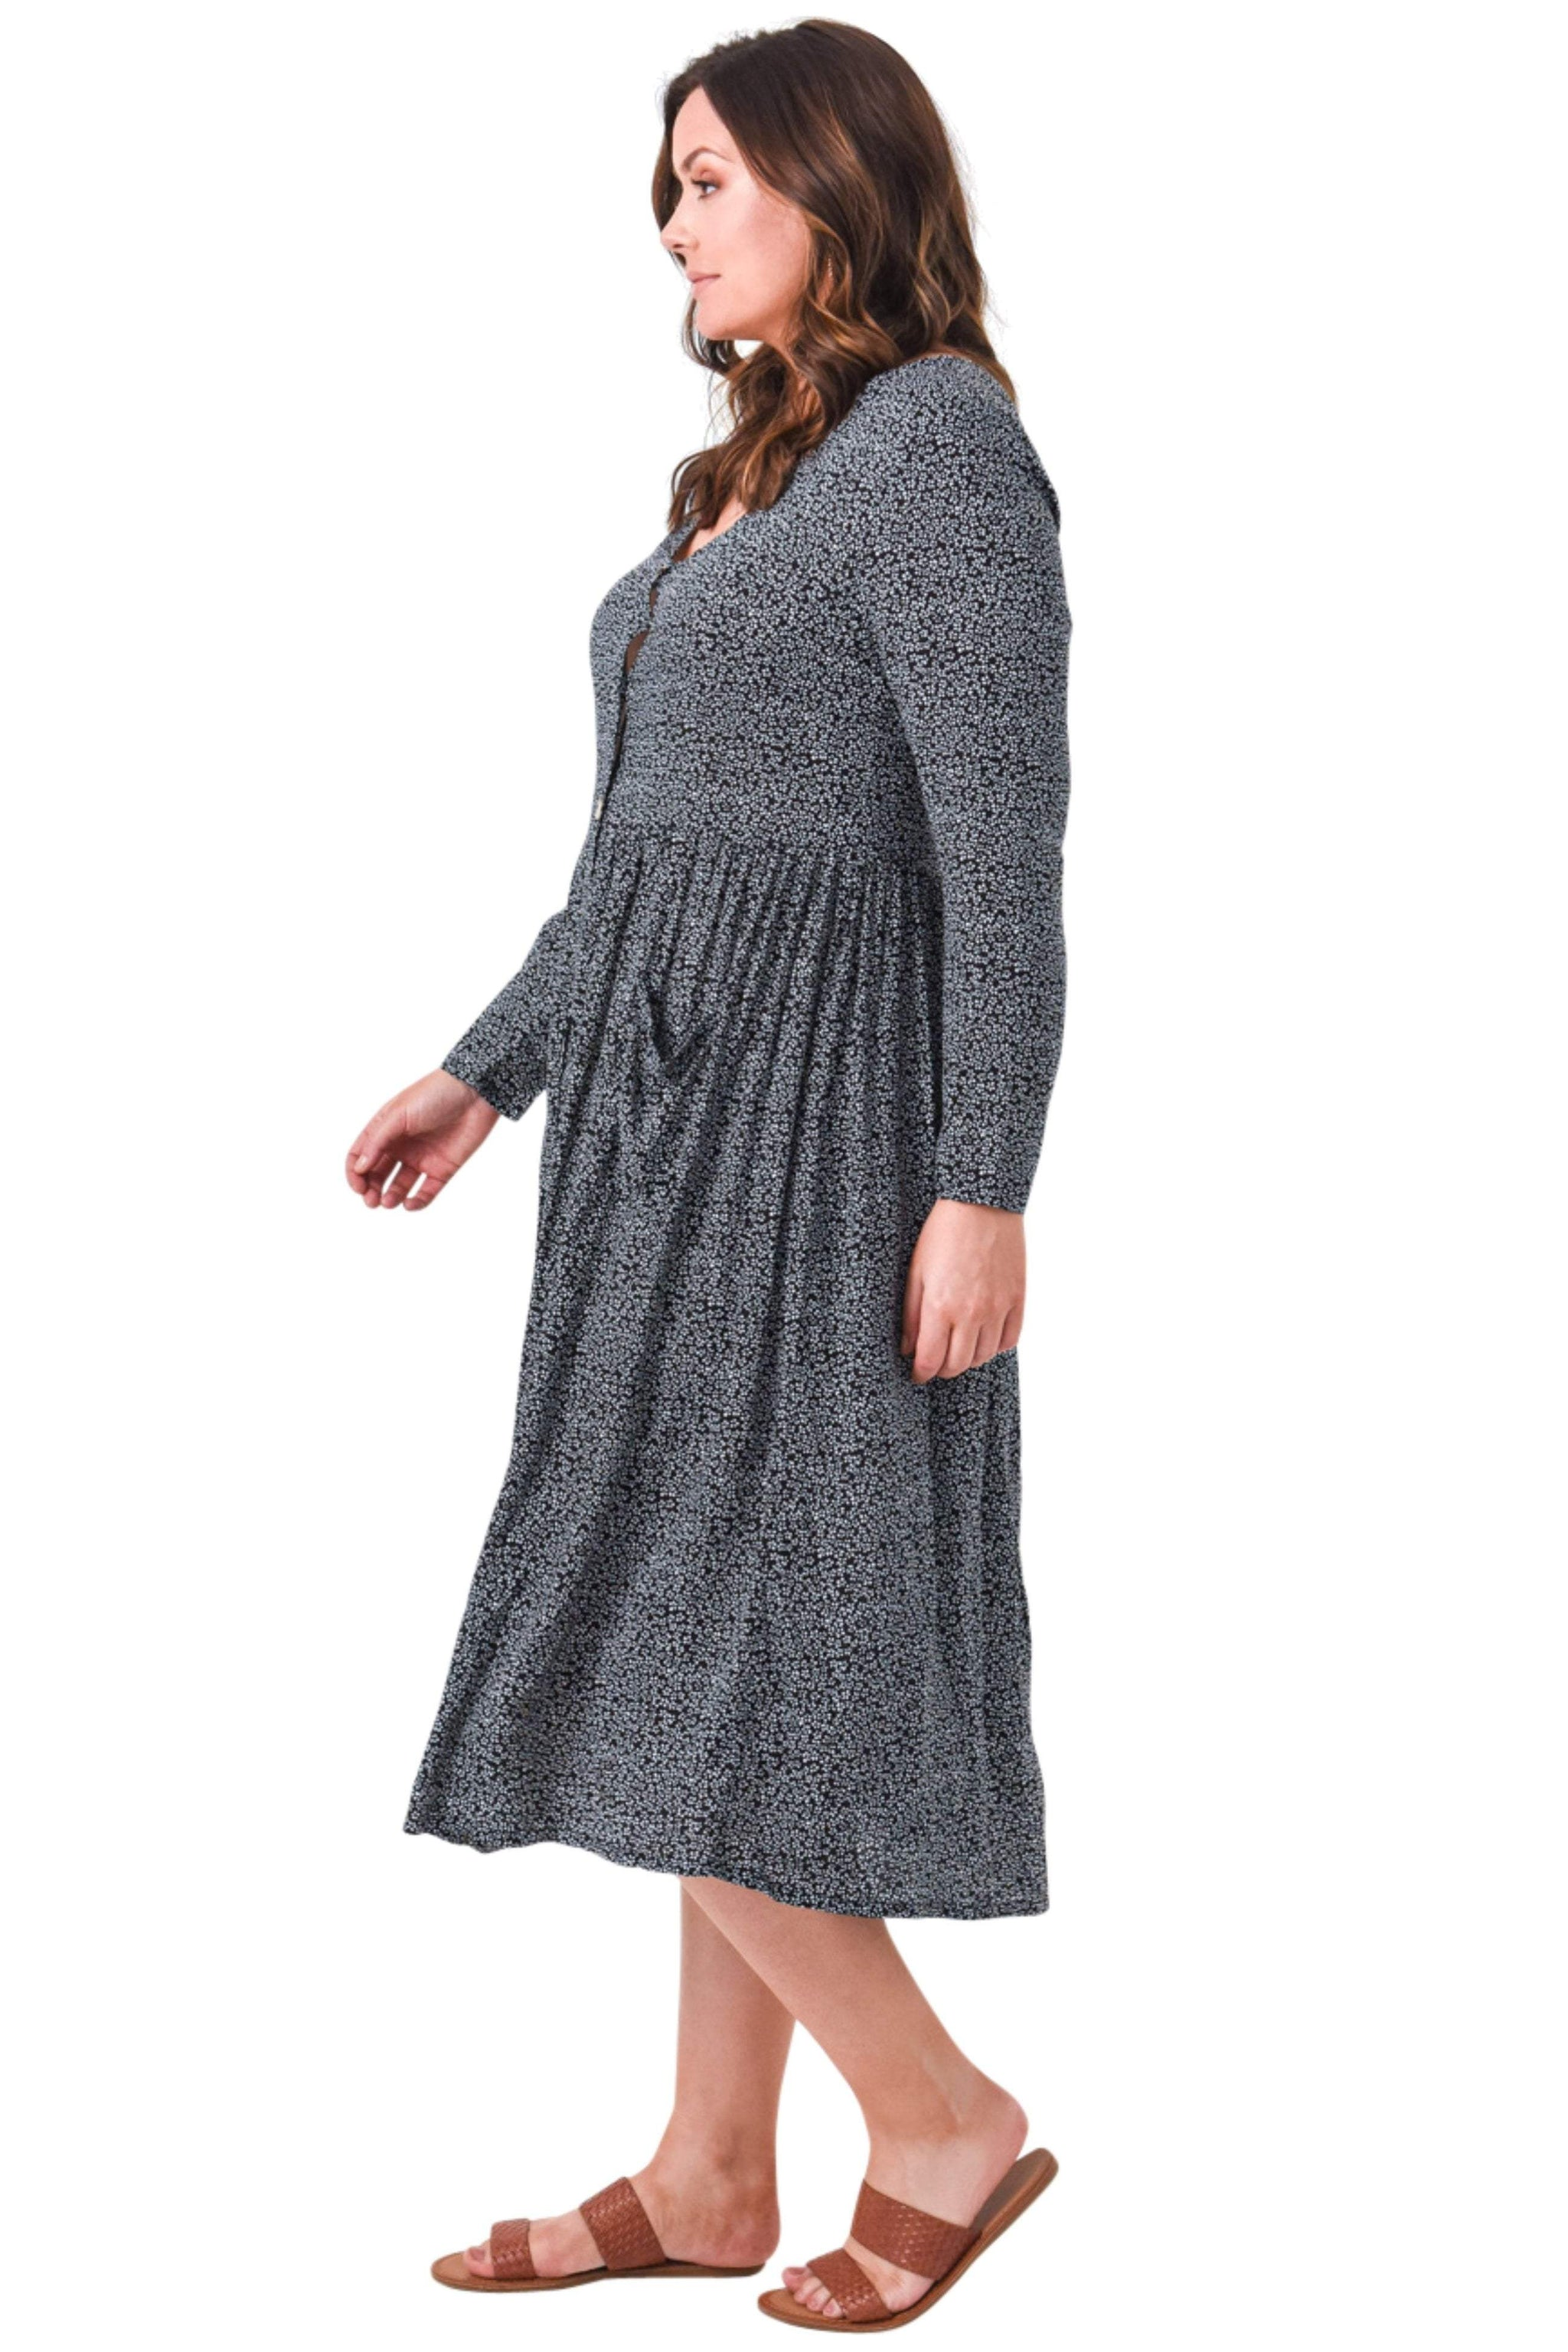 plus size Long Sleeve Dress aa. Louise Dress